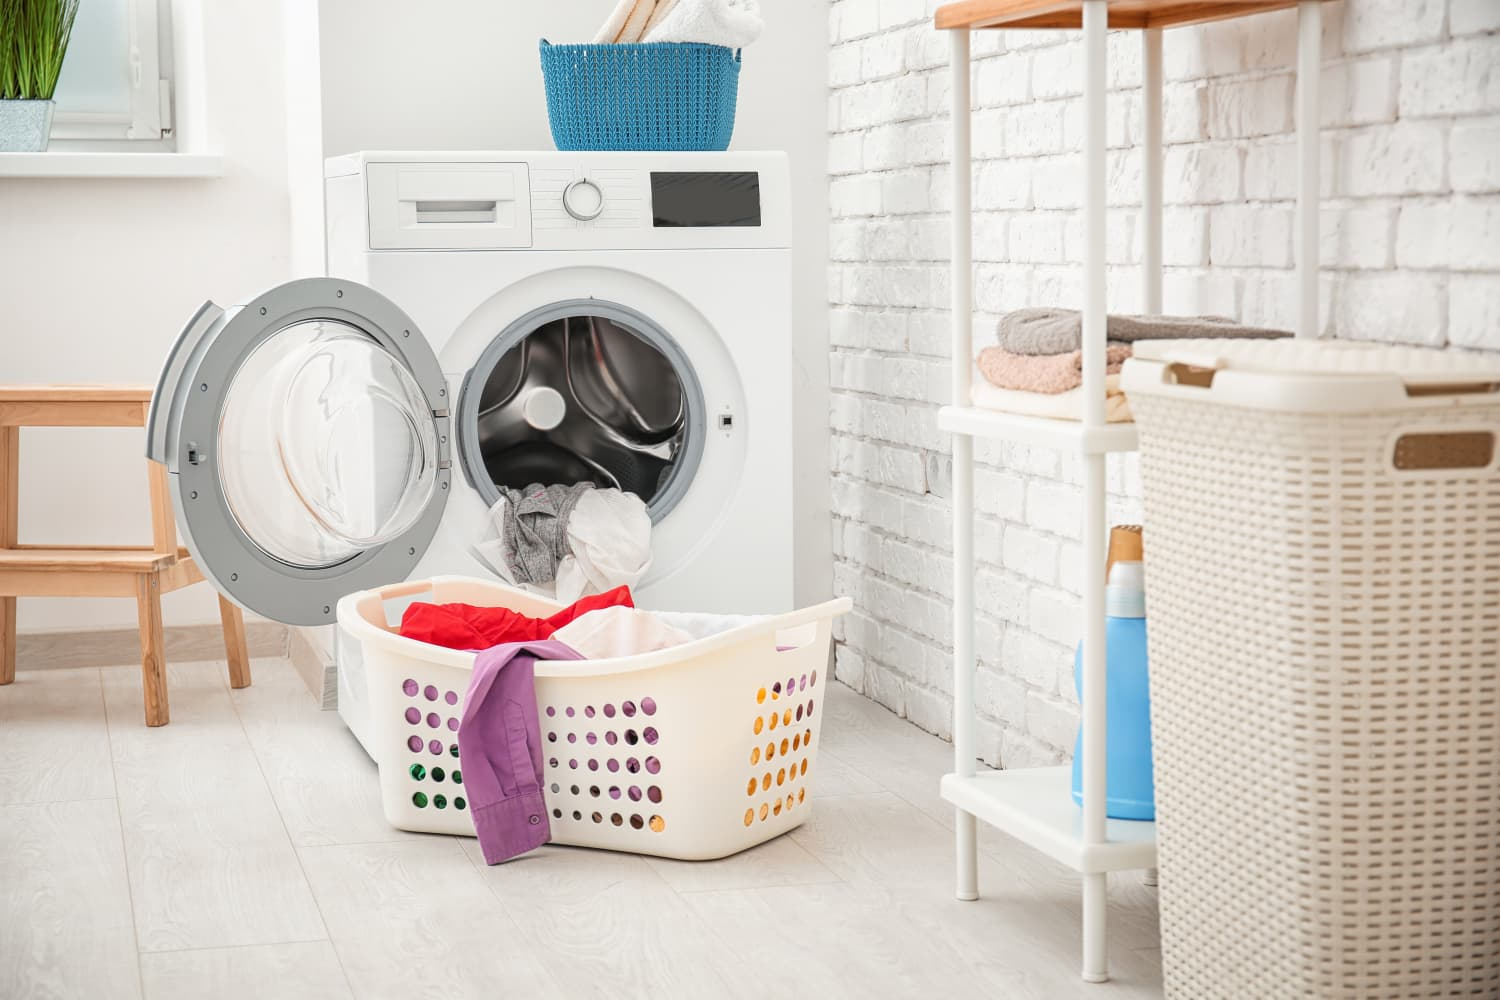 Real Estate Agents Say All The Best Laundry Rooms Have These 5 Things in Common